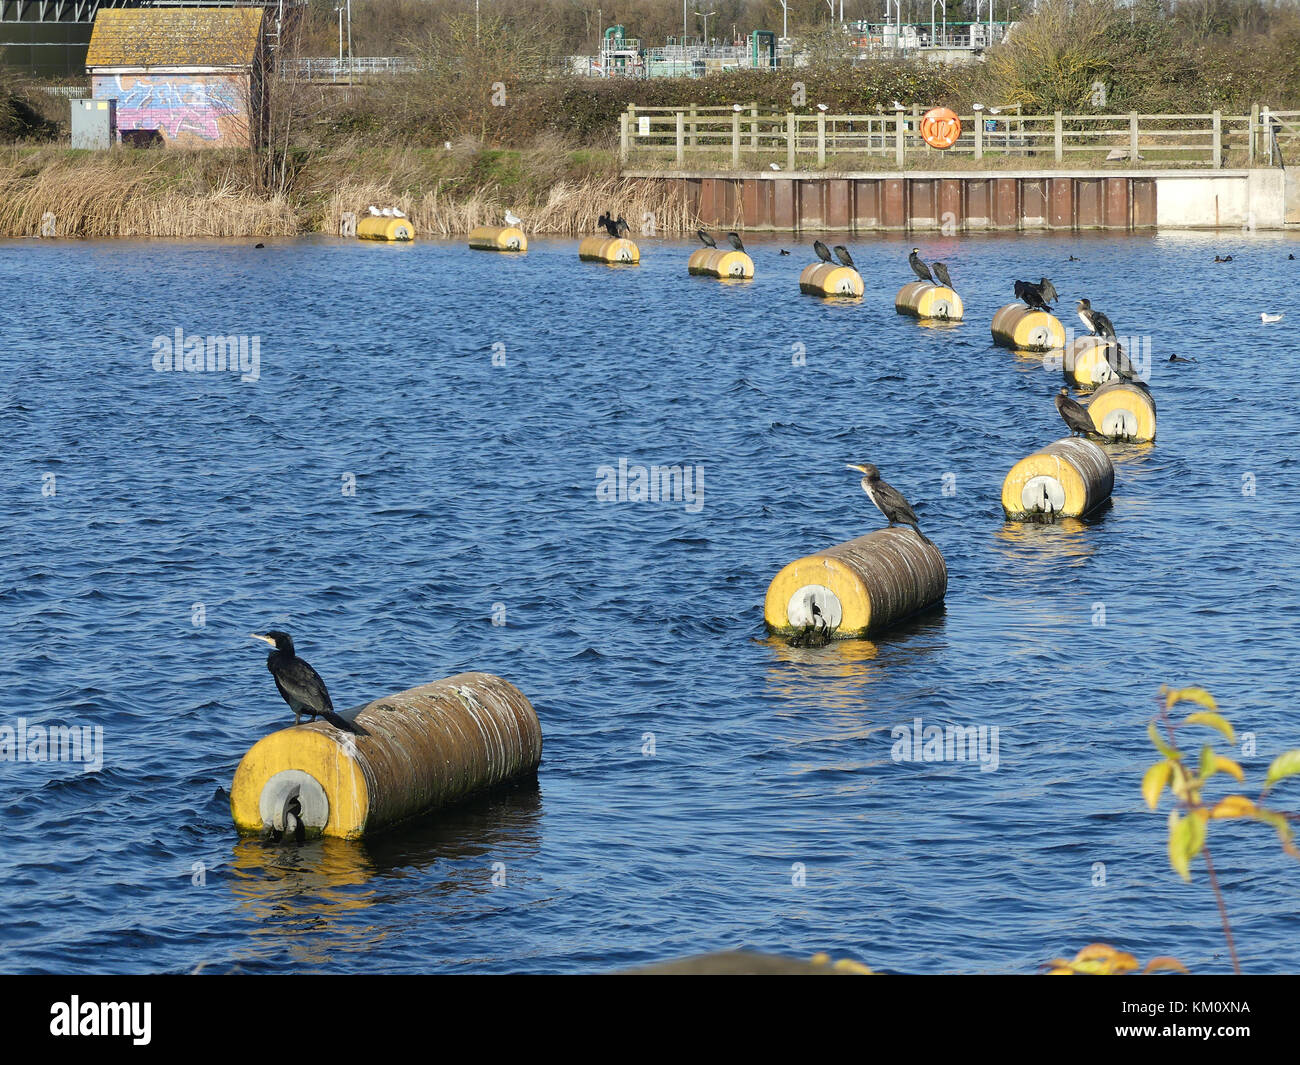 GREAT CORMORANTS Phalacrocorax carbo) drying themselves on a Jubilee River weir near Slough, Berkshire, England. - Stock Image